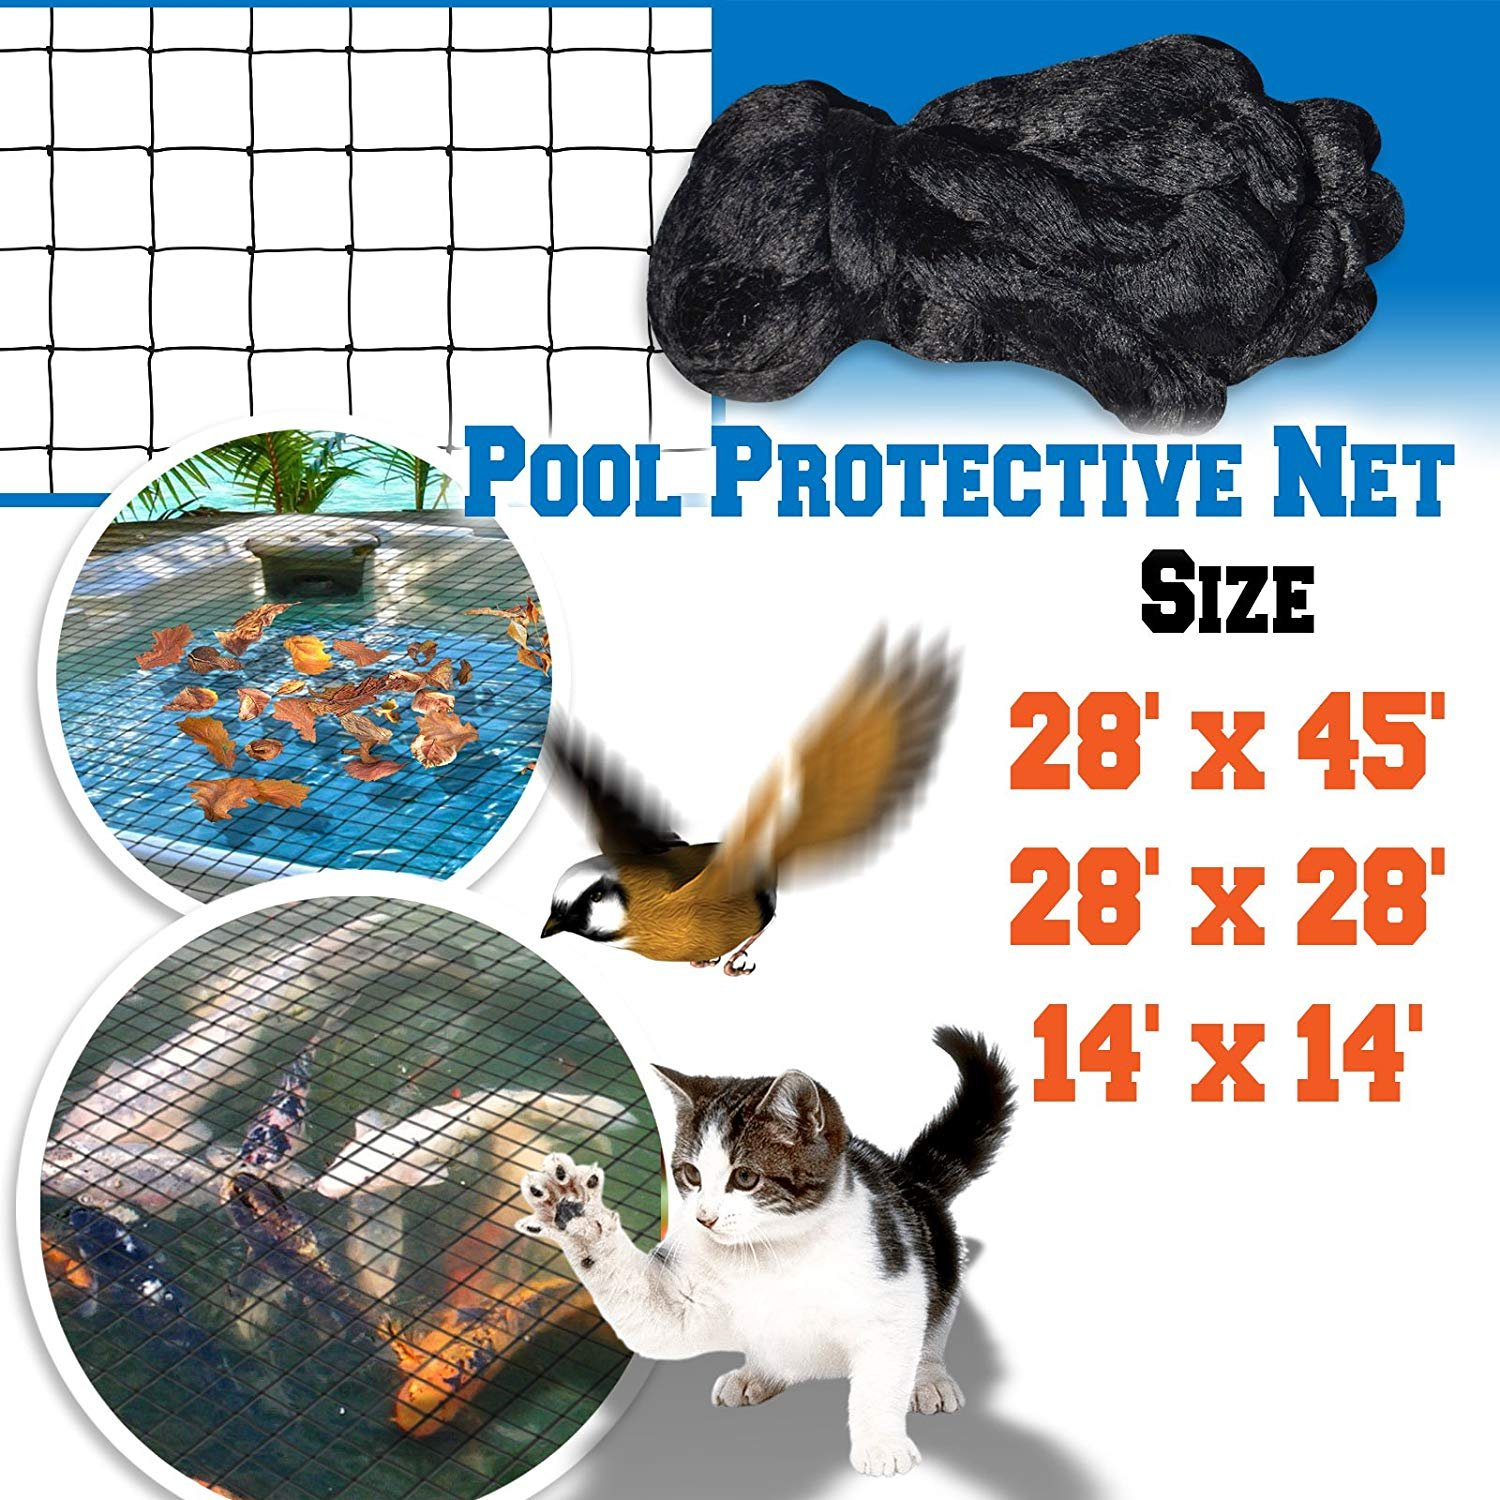 BenefitUSA Pool Idea Protective Net Pond Floating Netting Tub Mesh Cover (28' x28') by BenefitUSA